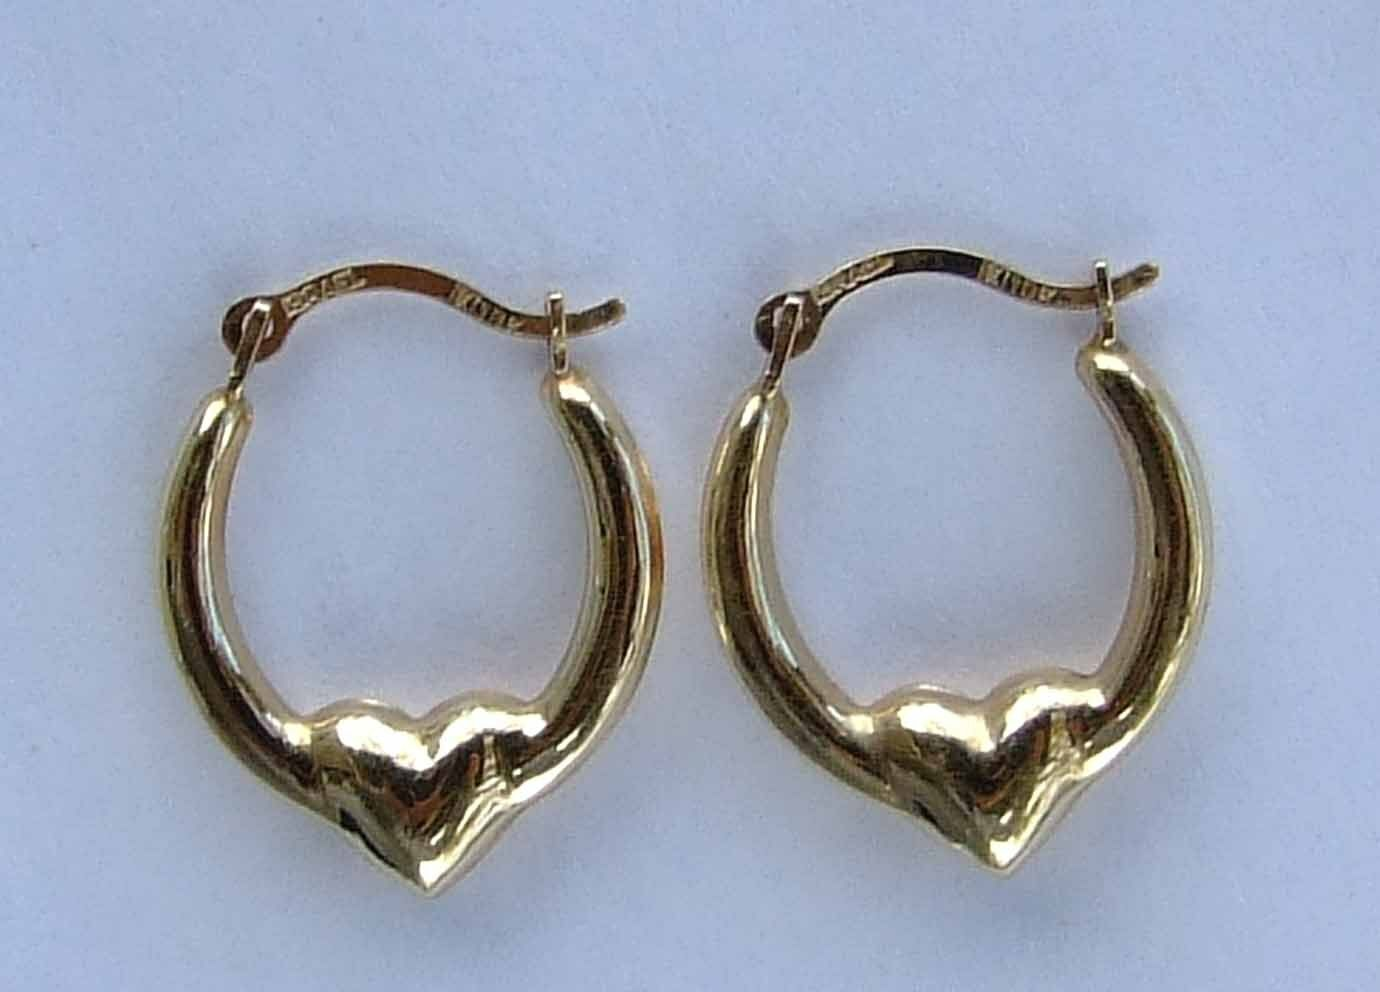 Small Puff Heart Hoop Earrings W/ Smooth Finish